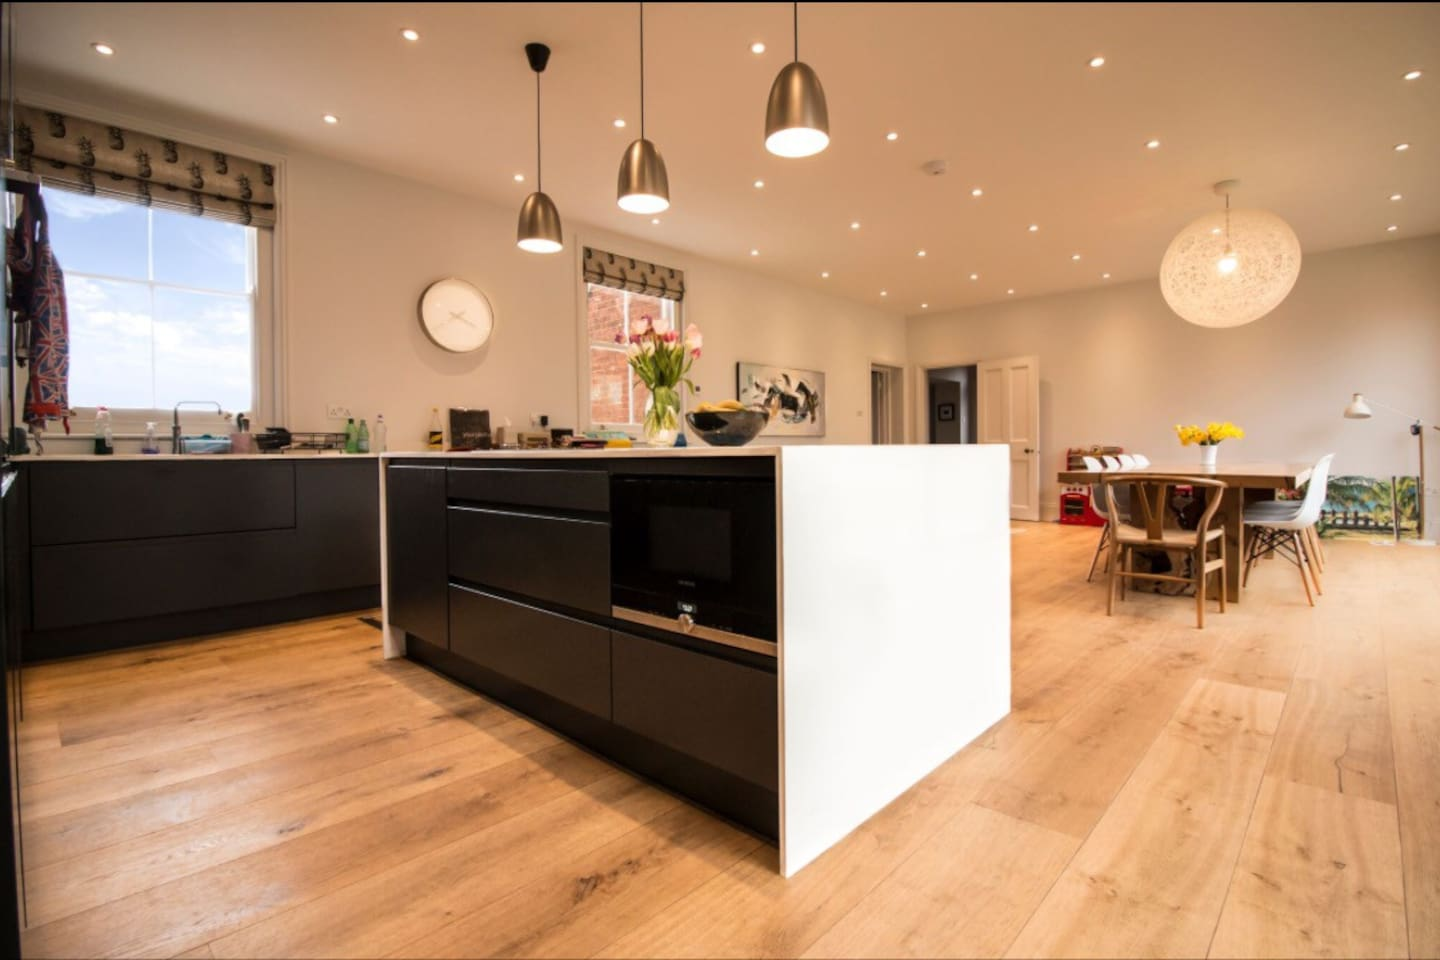 Full use of family kitchen